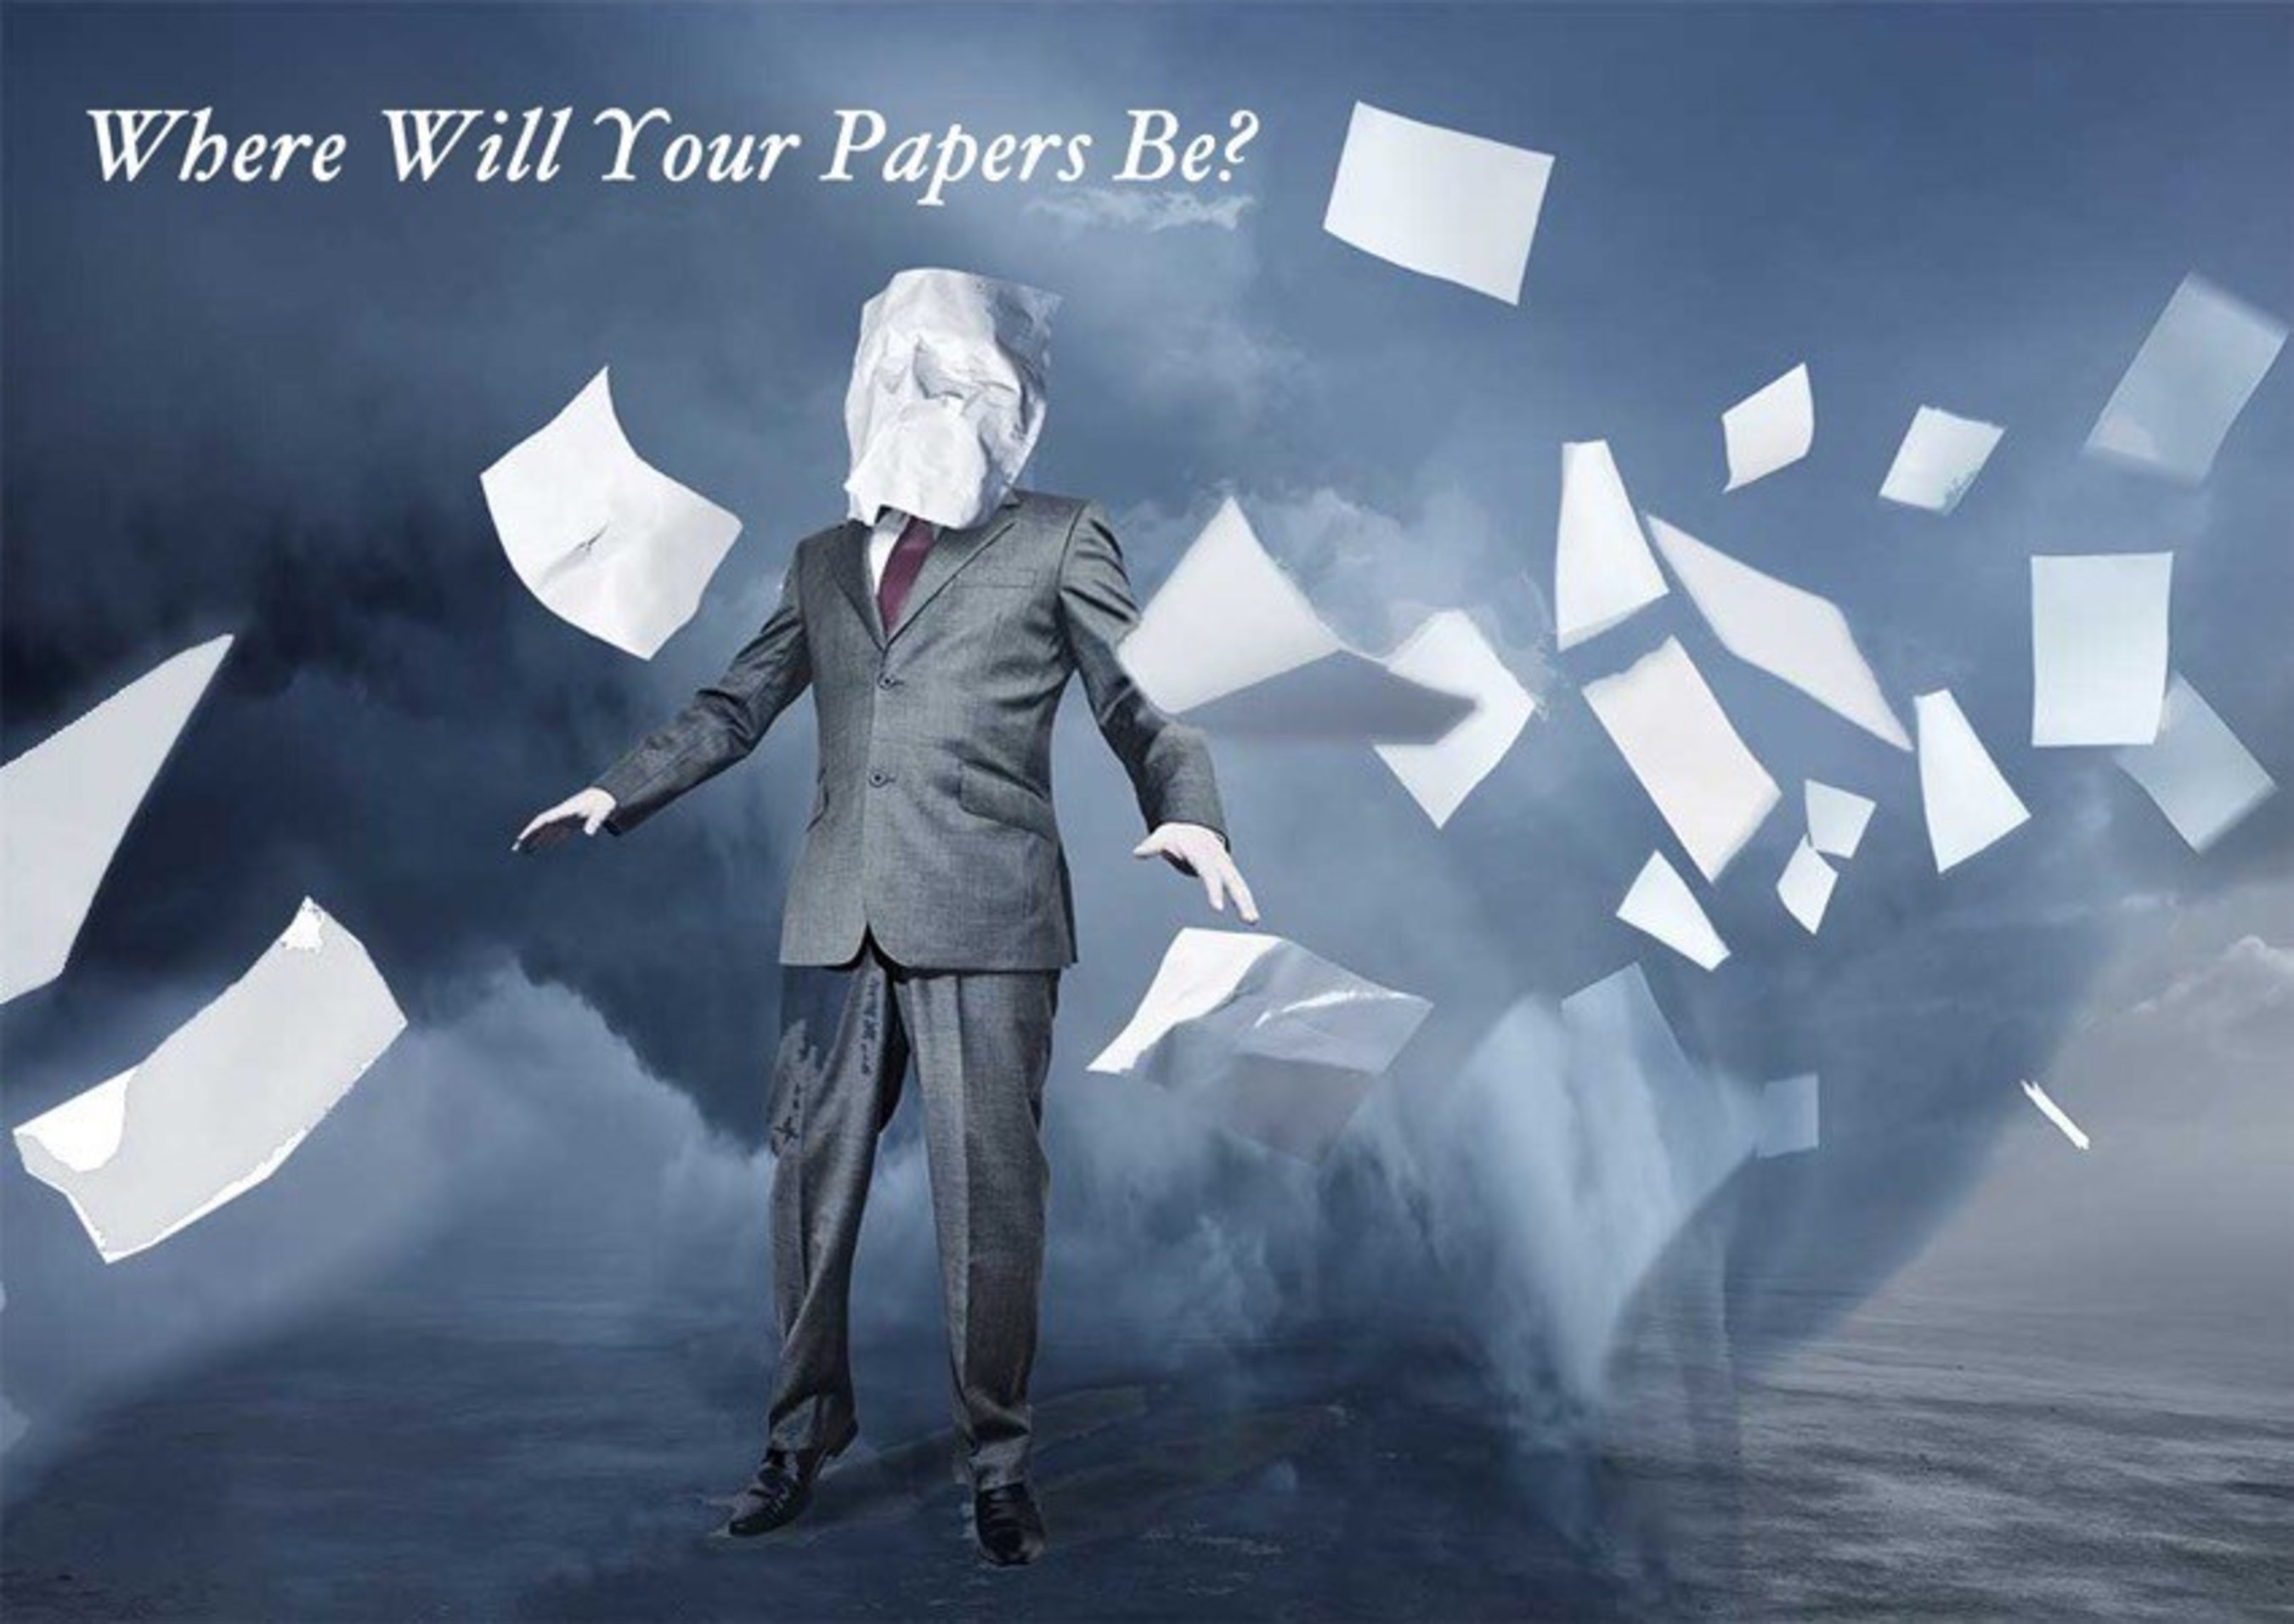 PaperworkLockbox - Finally, There IS a Better Way to Secure Your Important Documents!